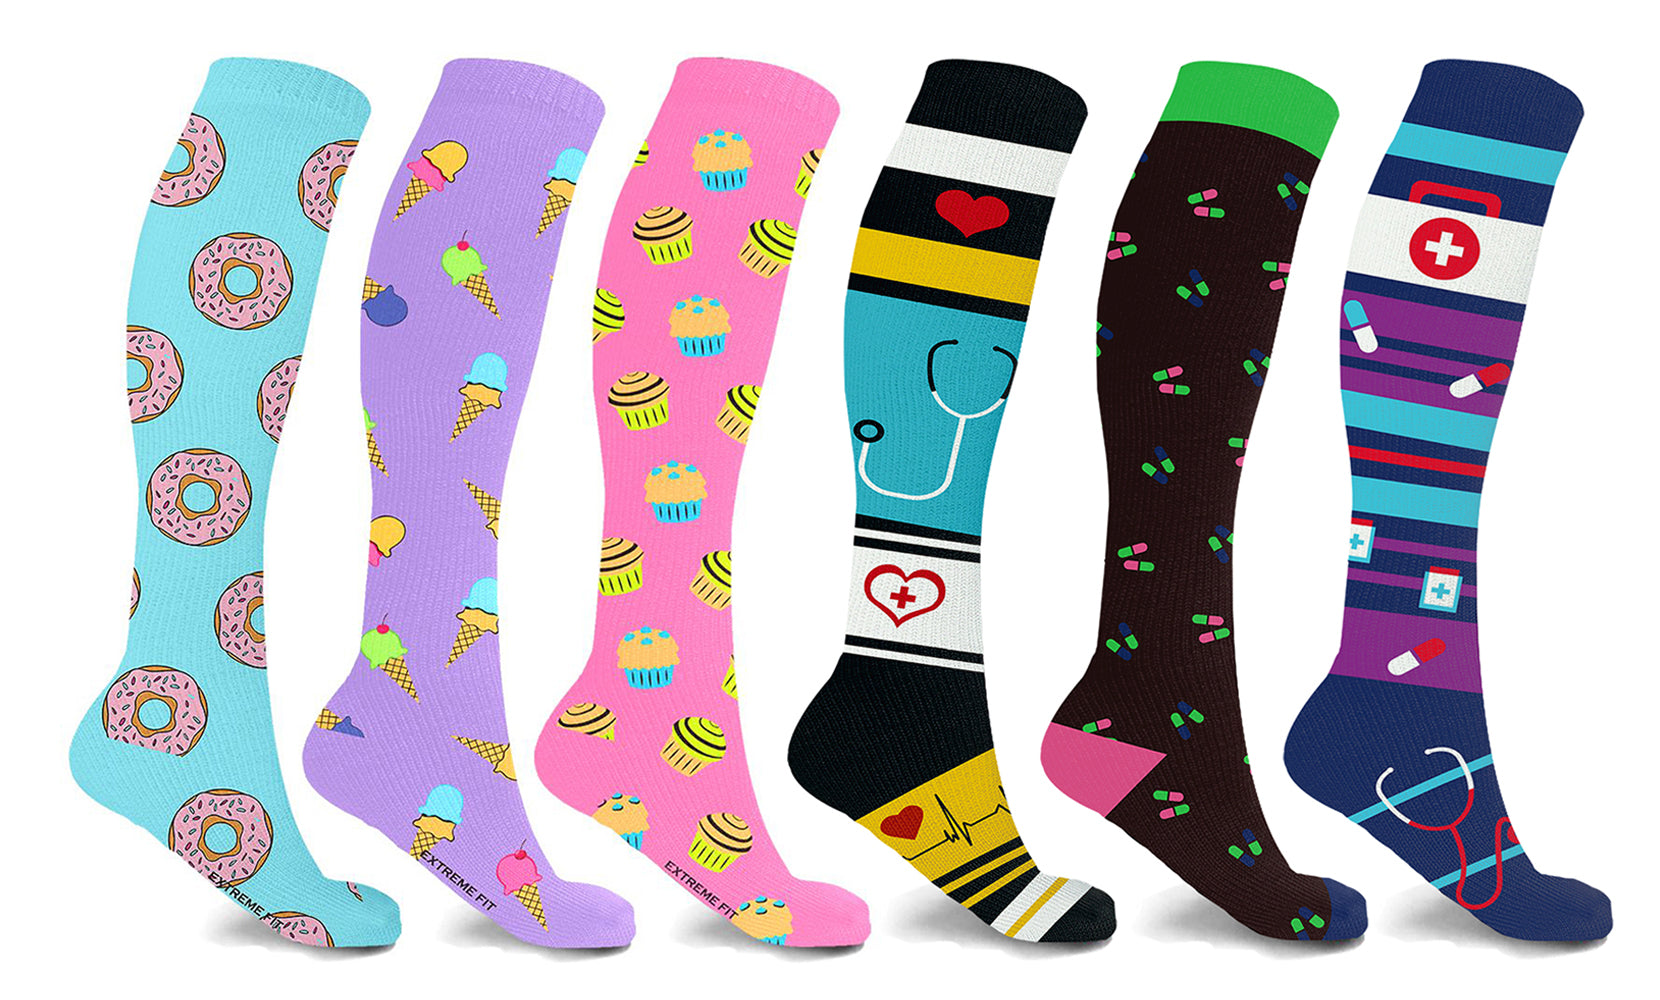 3-Pairs: High Energy Expressive Compression Socks